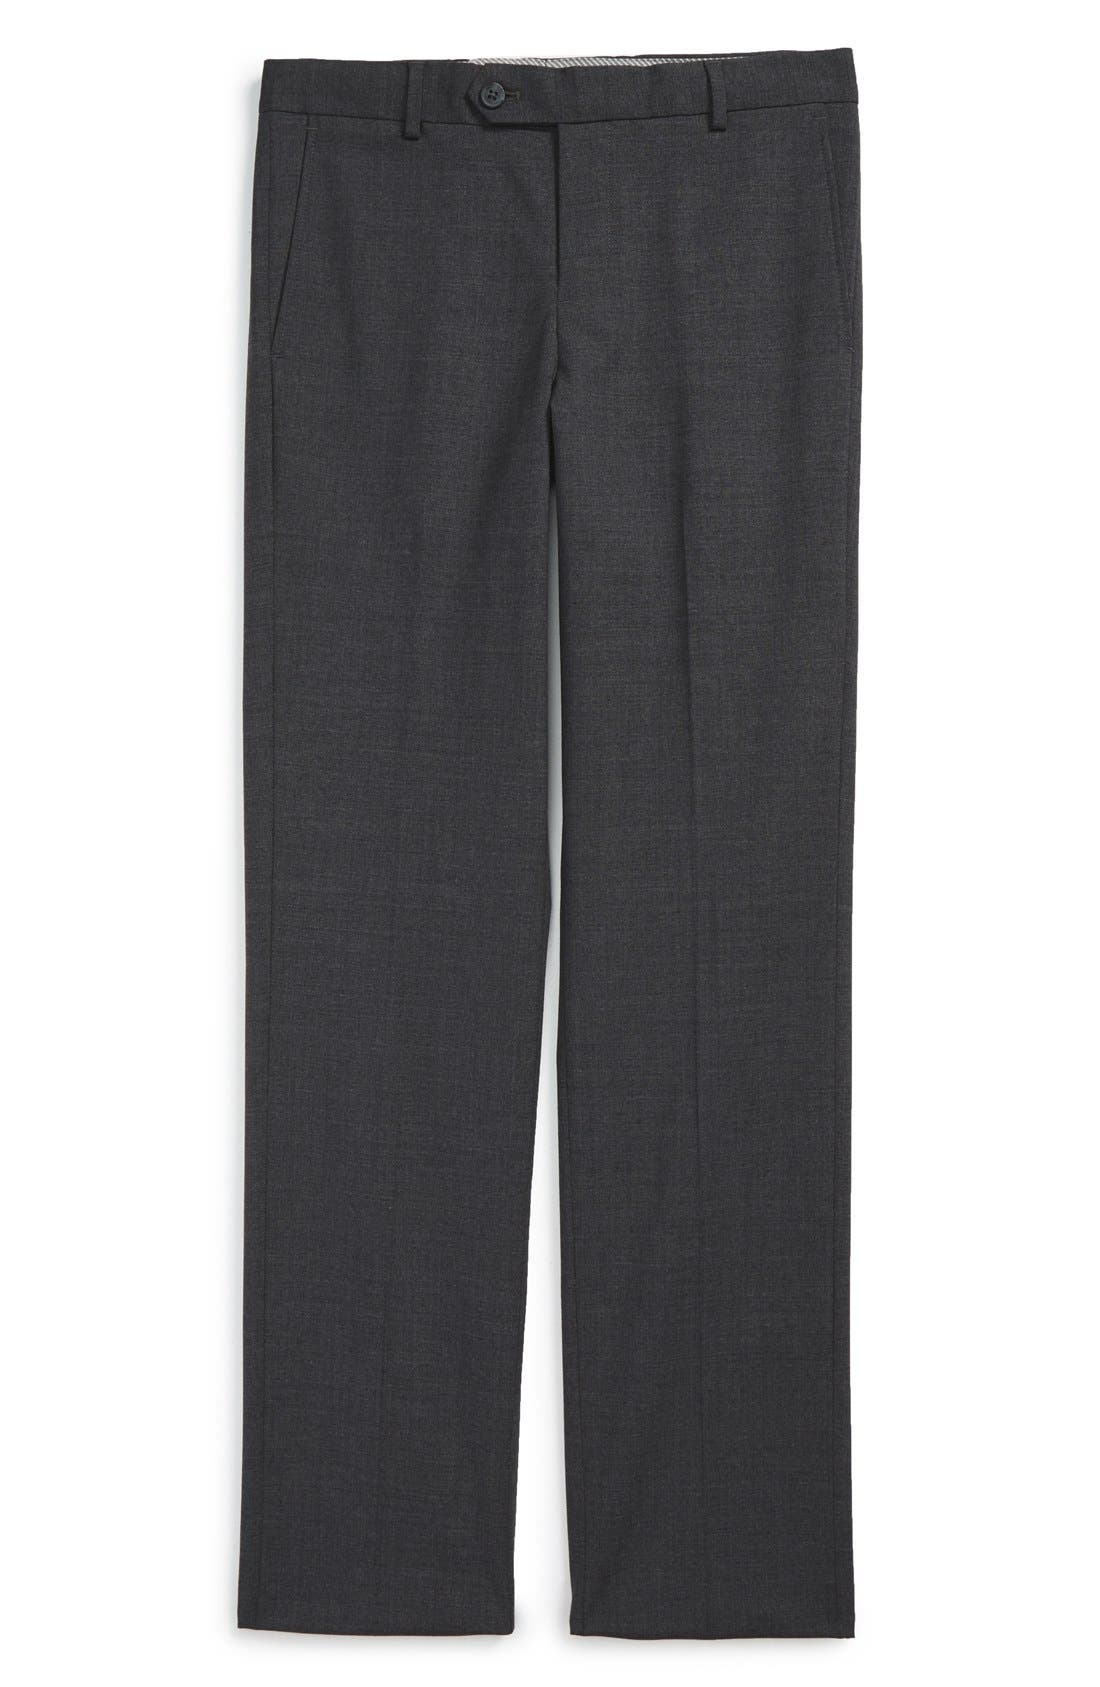 NORDSTROM 'Parker' Modern Fit Stretch Trousers